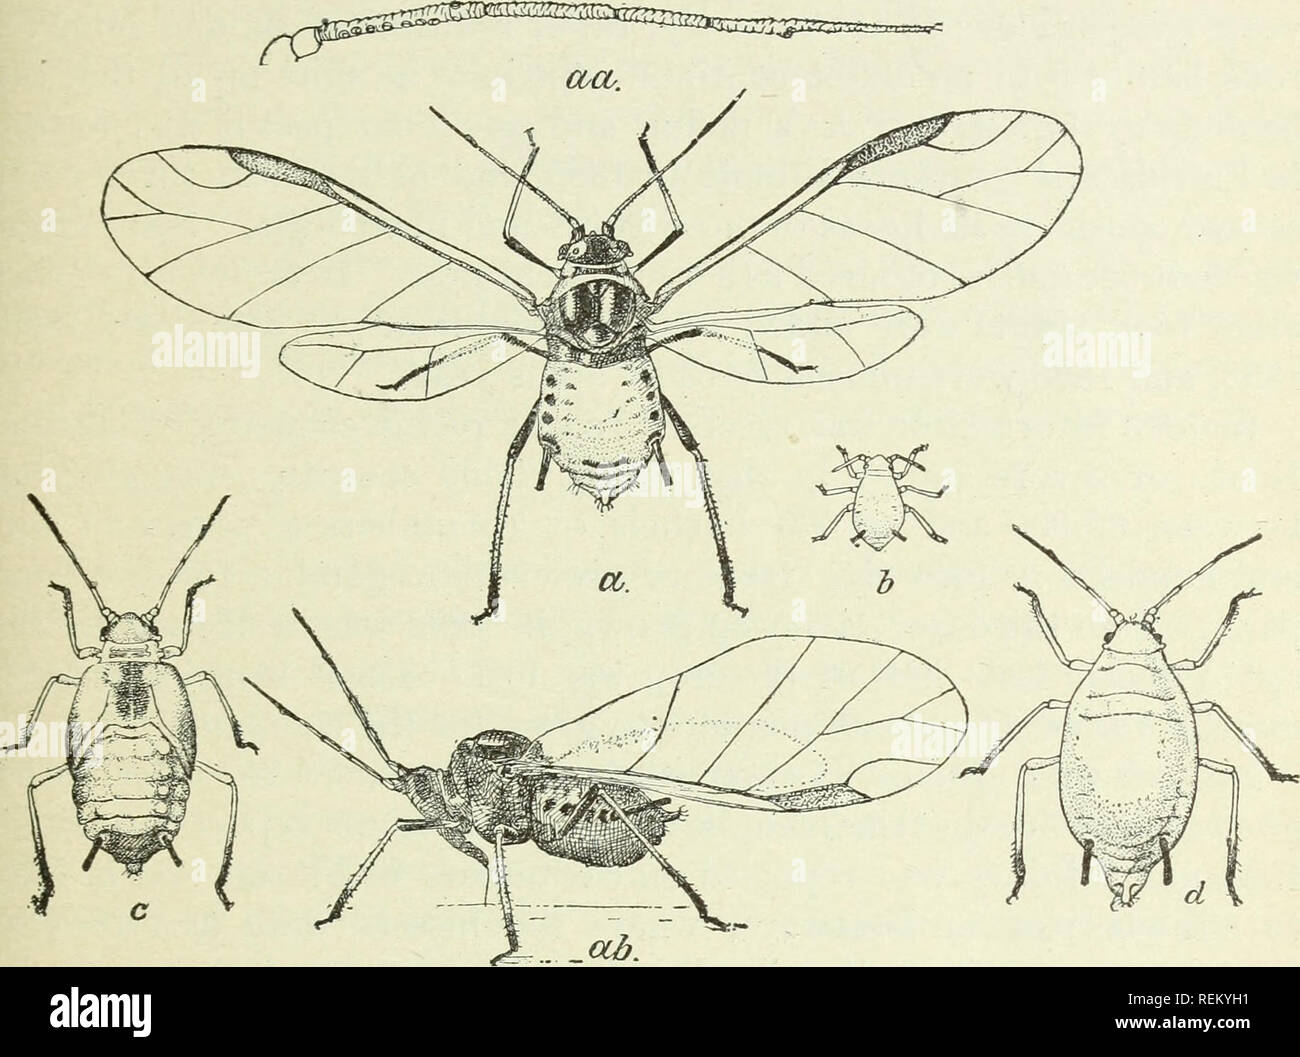 """. Circular. Insects. 3 from 1.2 to 1.8mm, while the wings expand from 4.5 to 6mm. A darker form of the female is shown in profile at ab, and the antennas, much enlarged, at aa. The male has not as jet been recognized. This is by far the most important and abundant aphis affecting melons and other cucurbits, and is not likely to be confused with any other species occurring habitually on the same class of plants."""" It is, indeed, a very important pest, and, taken season after season, the worst aphis occurring in this country.. Fig. 2.—Melon aphis {Aphis f/ossj/pii): a, winged female; aa, enl - Stock Image"""